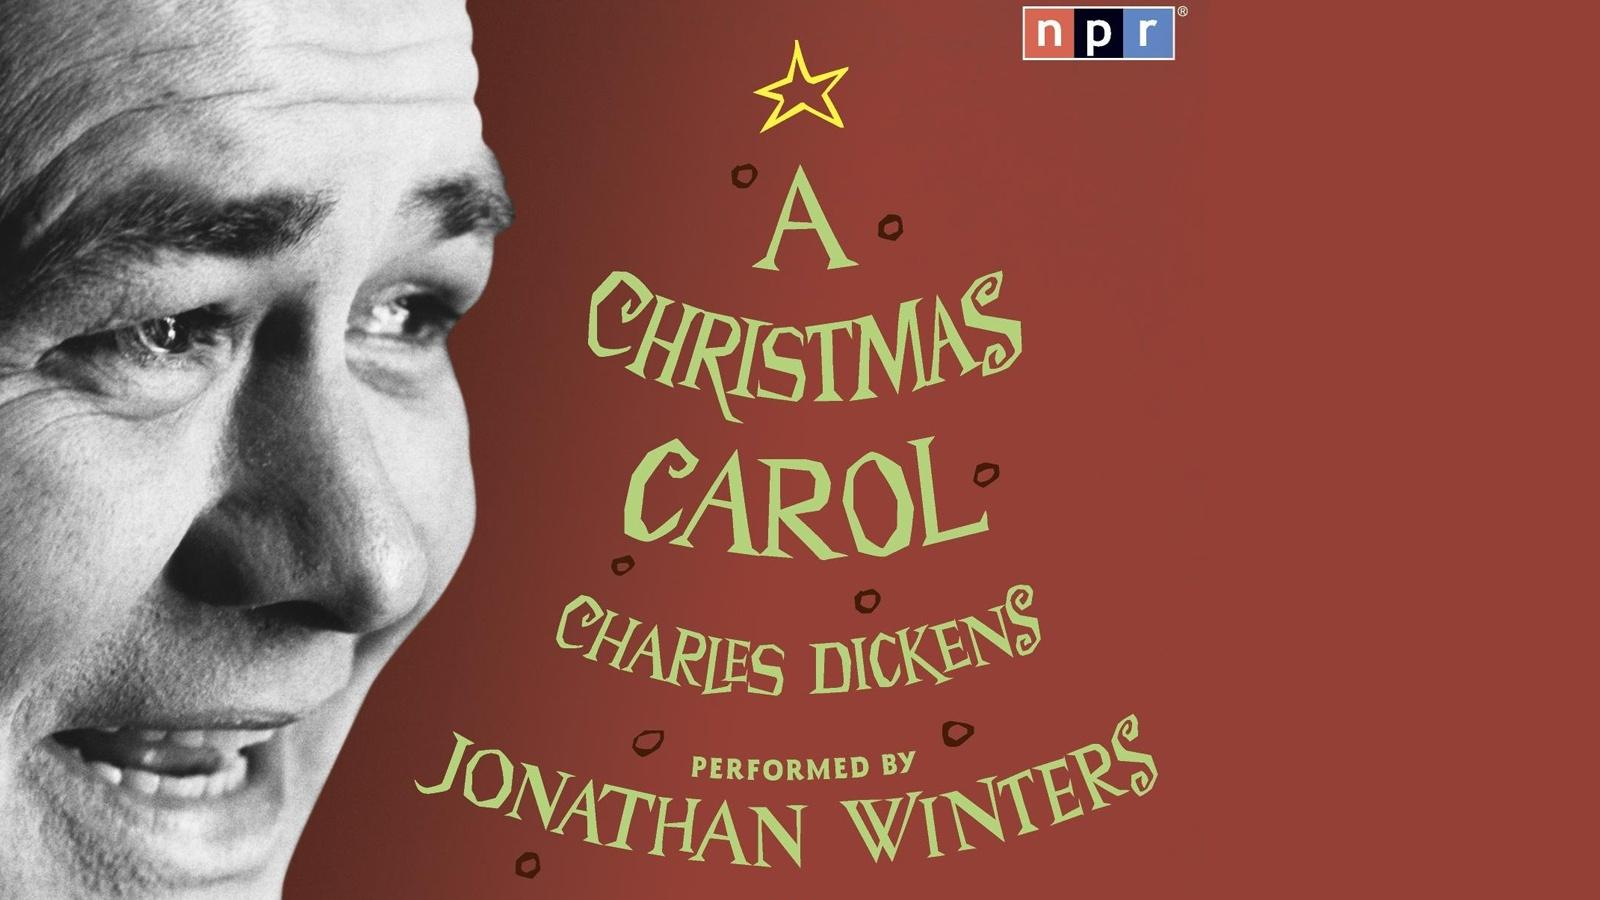 A Christmas Carol performed by Jonathan Winters